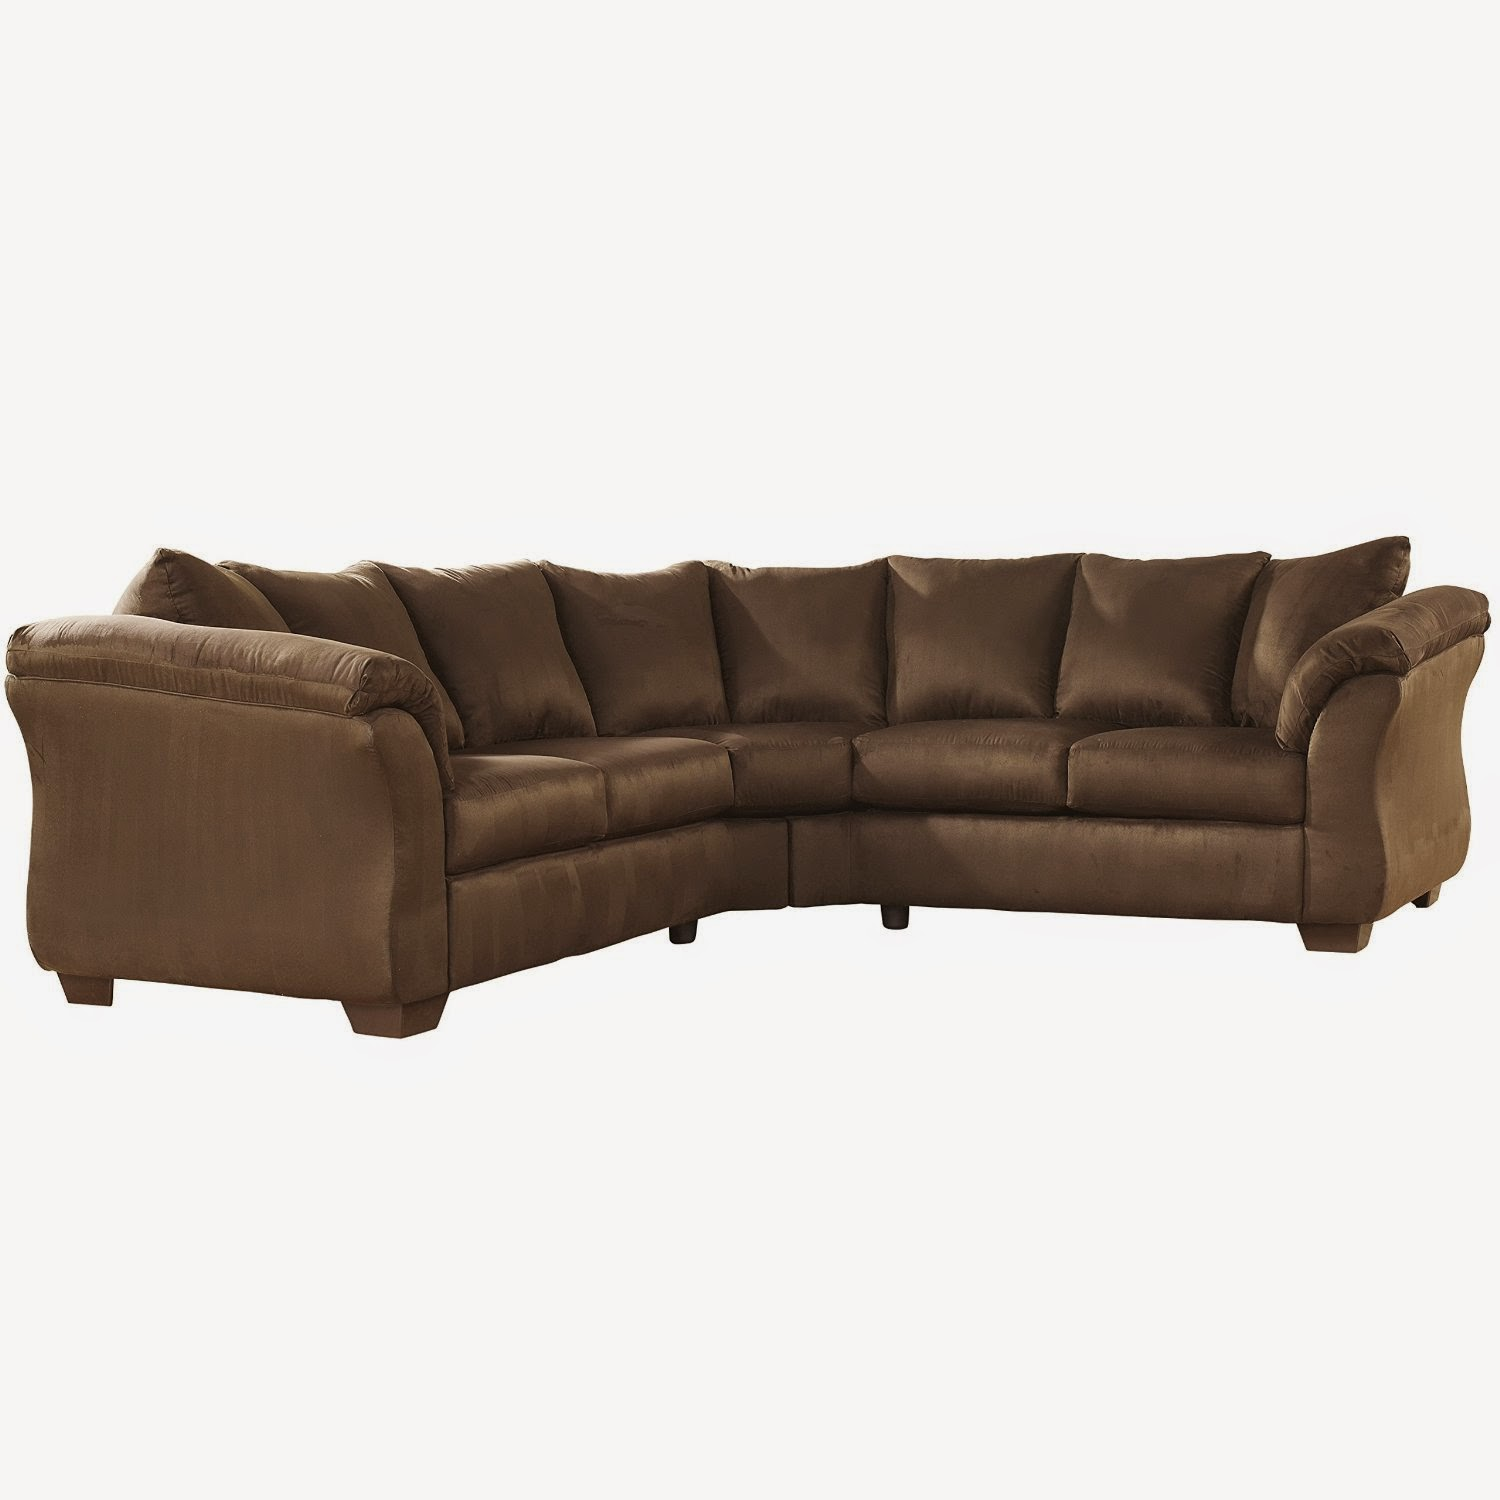 Discount 52 off flash furniture darcy sectional sofa for Cheap sectional couch